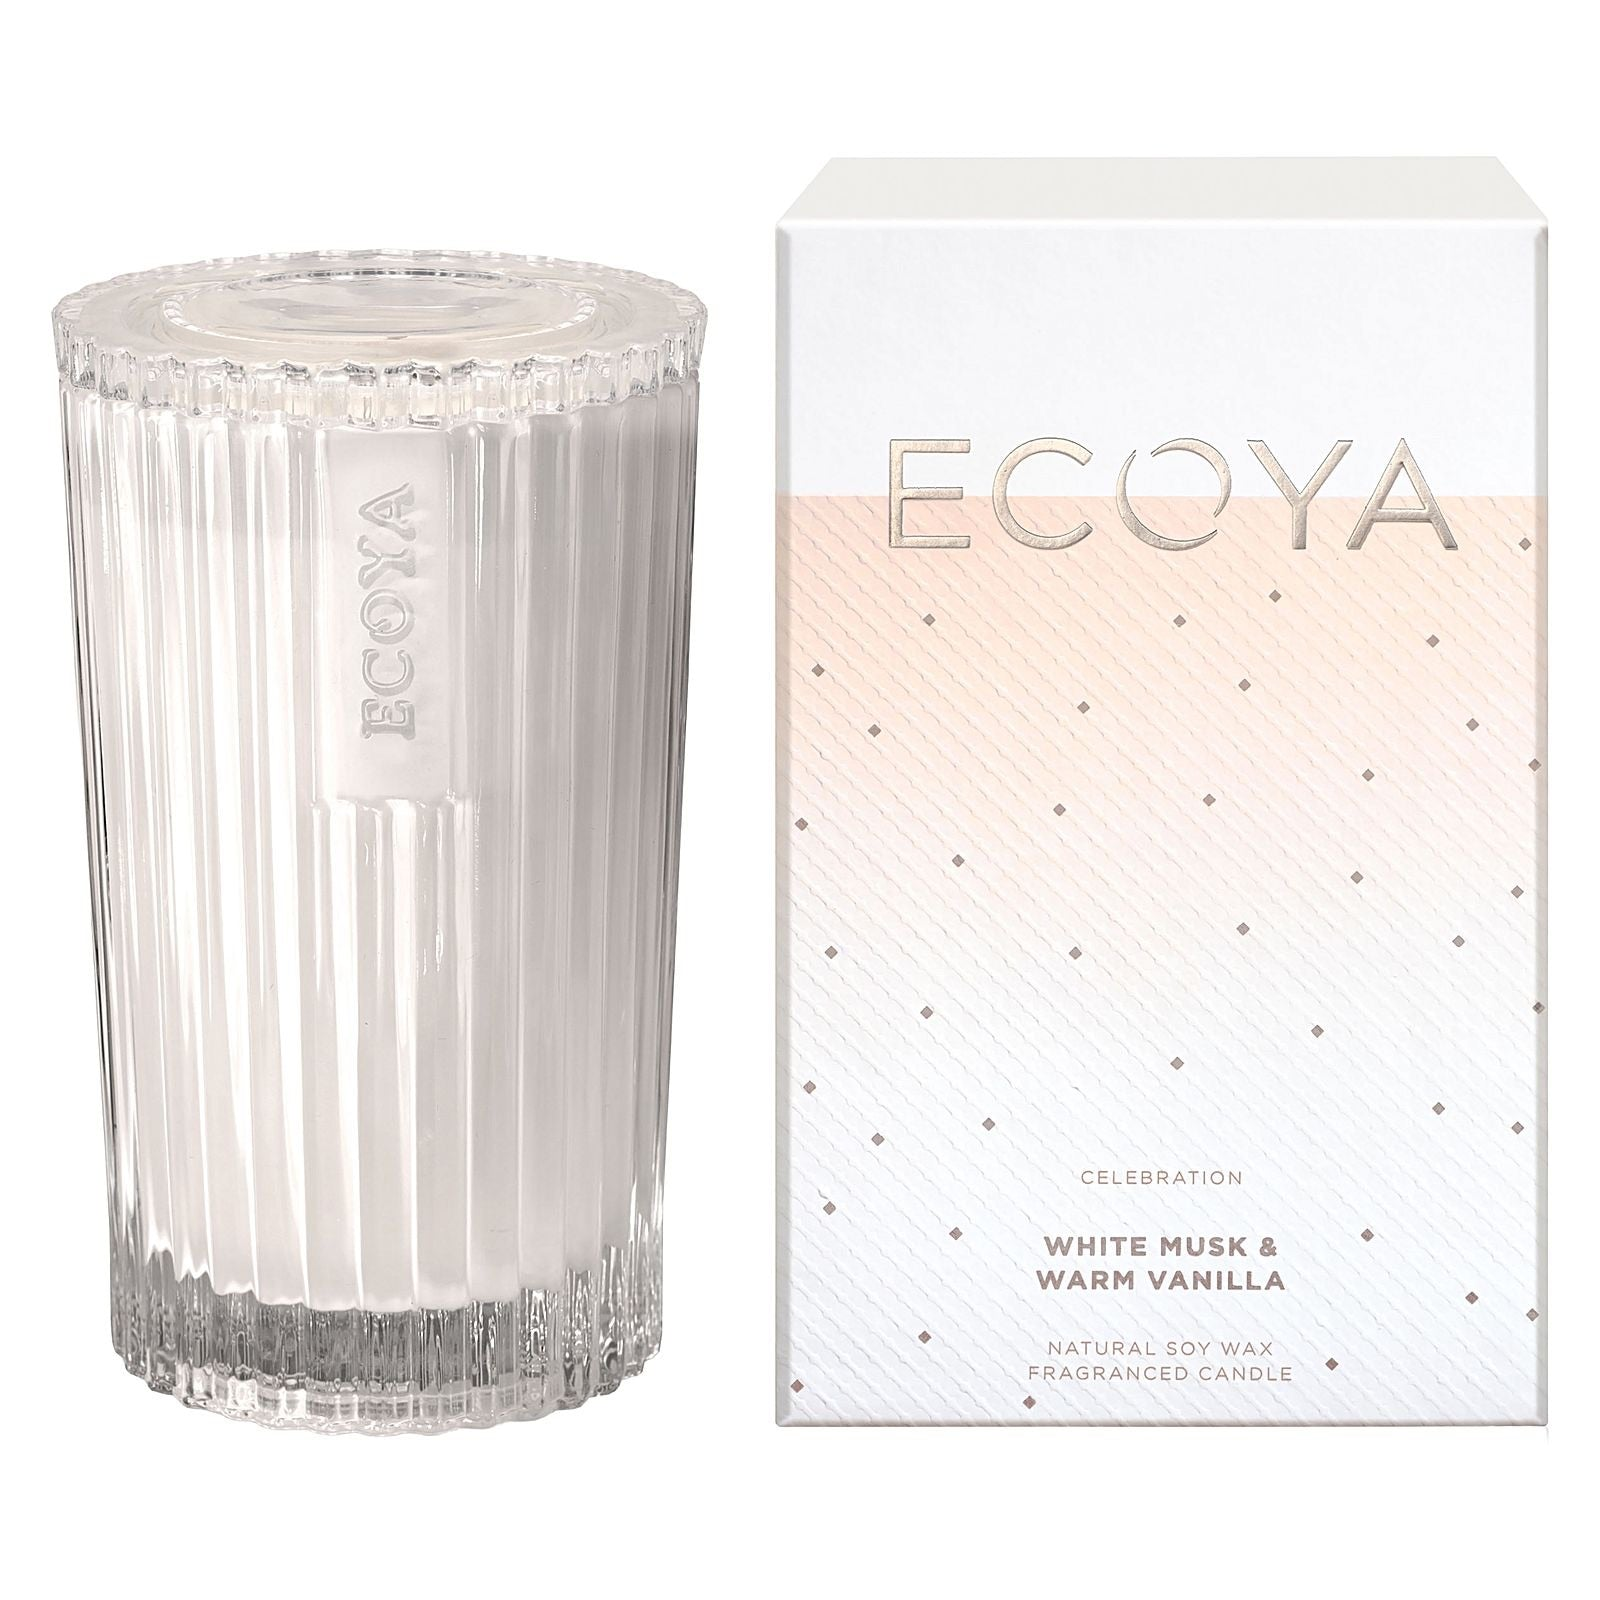 Ecoya / Celebration Candle (Med) - White Musk & Warm Vanilla